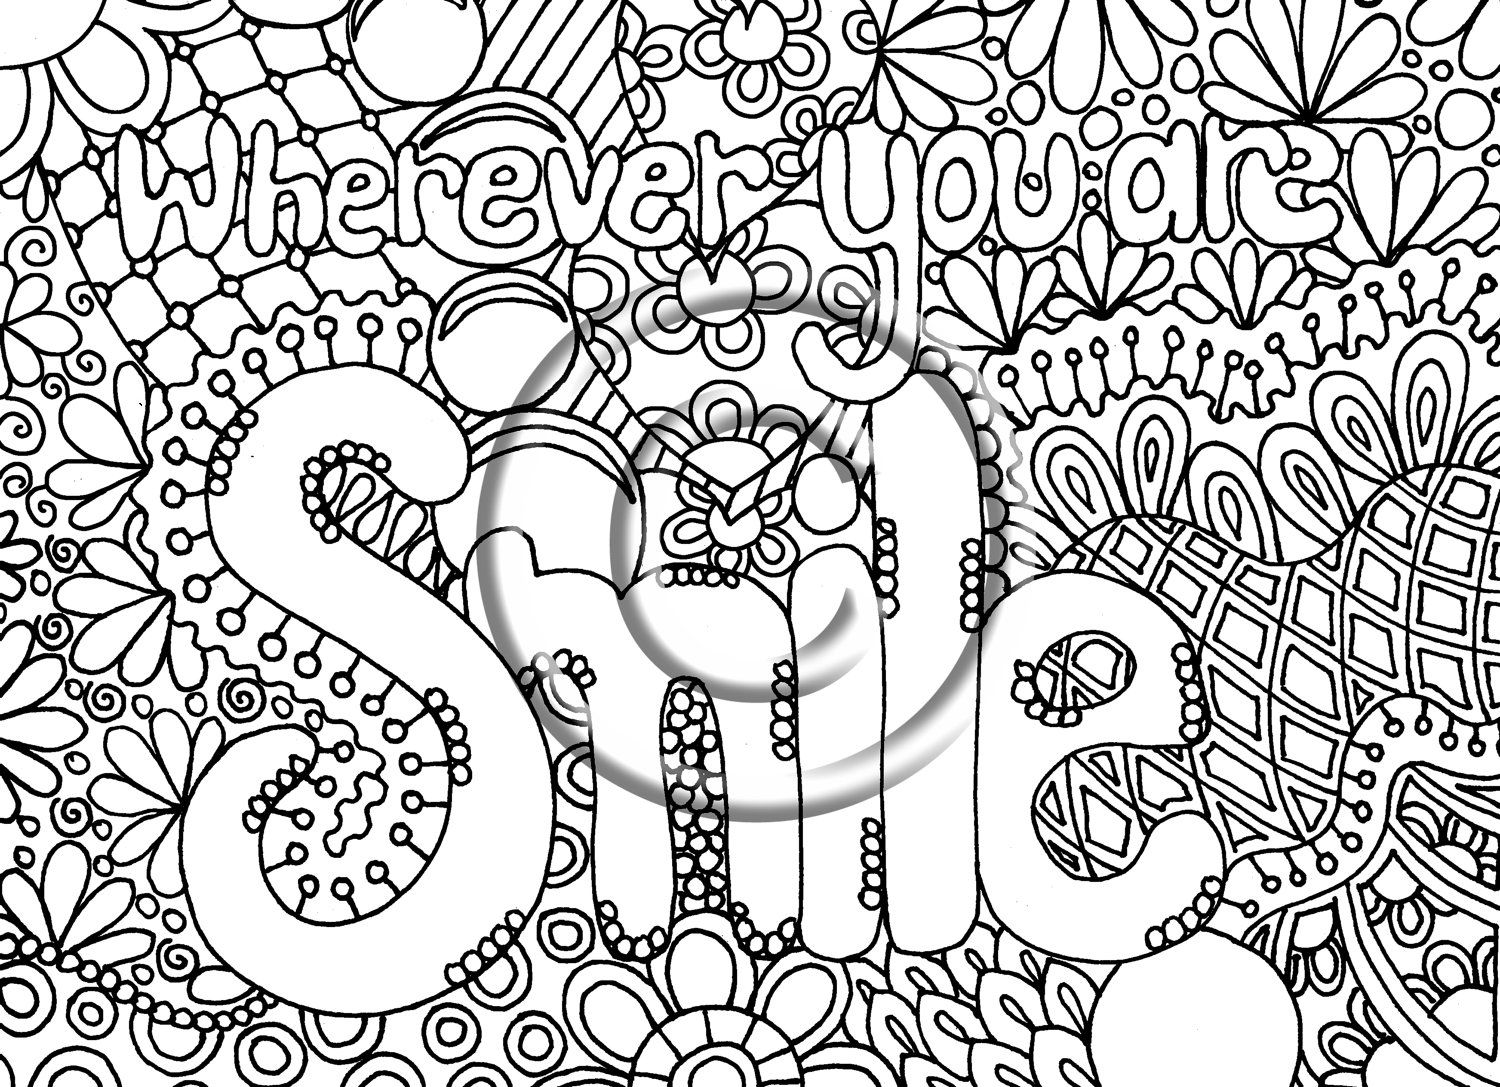 digital download coloring page hand drawn zentangle inspired abstract zendoodle hippie 220 via etsy - Coloring Pages Abstract Printable